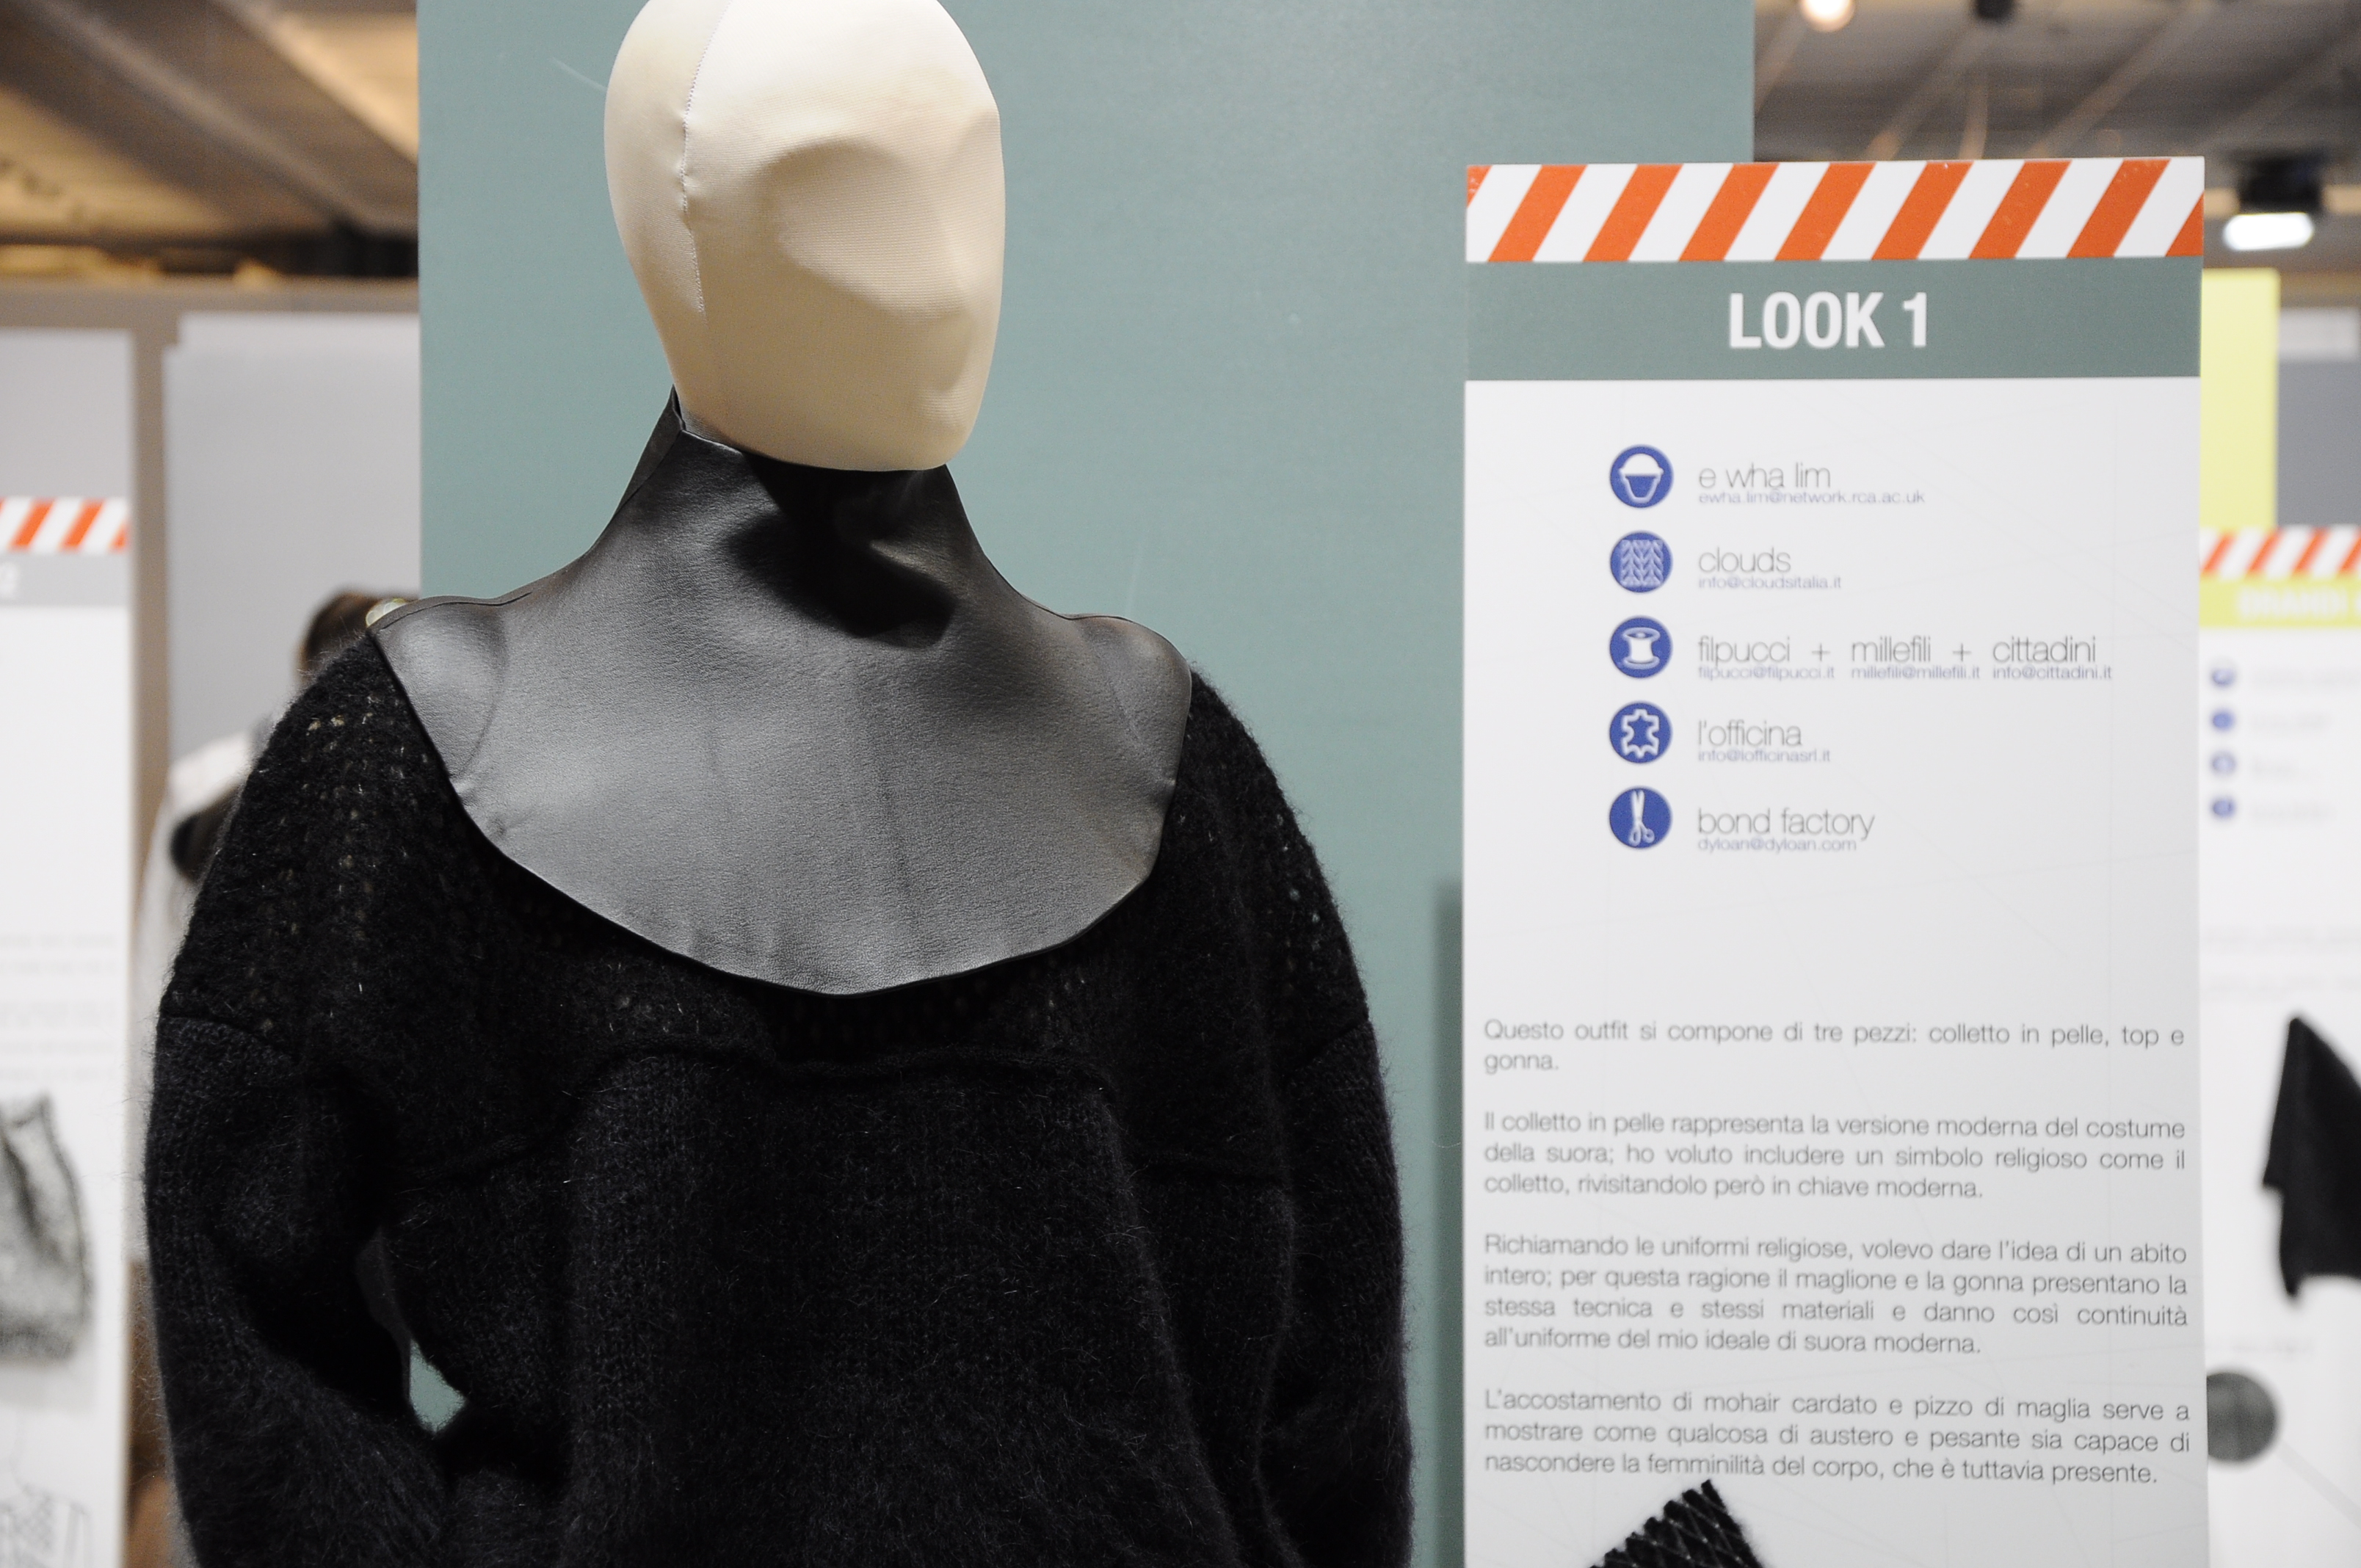 MODA FUTURIBILE - focus: Innovation